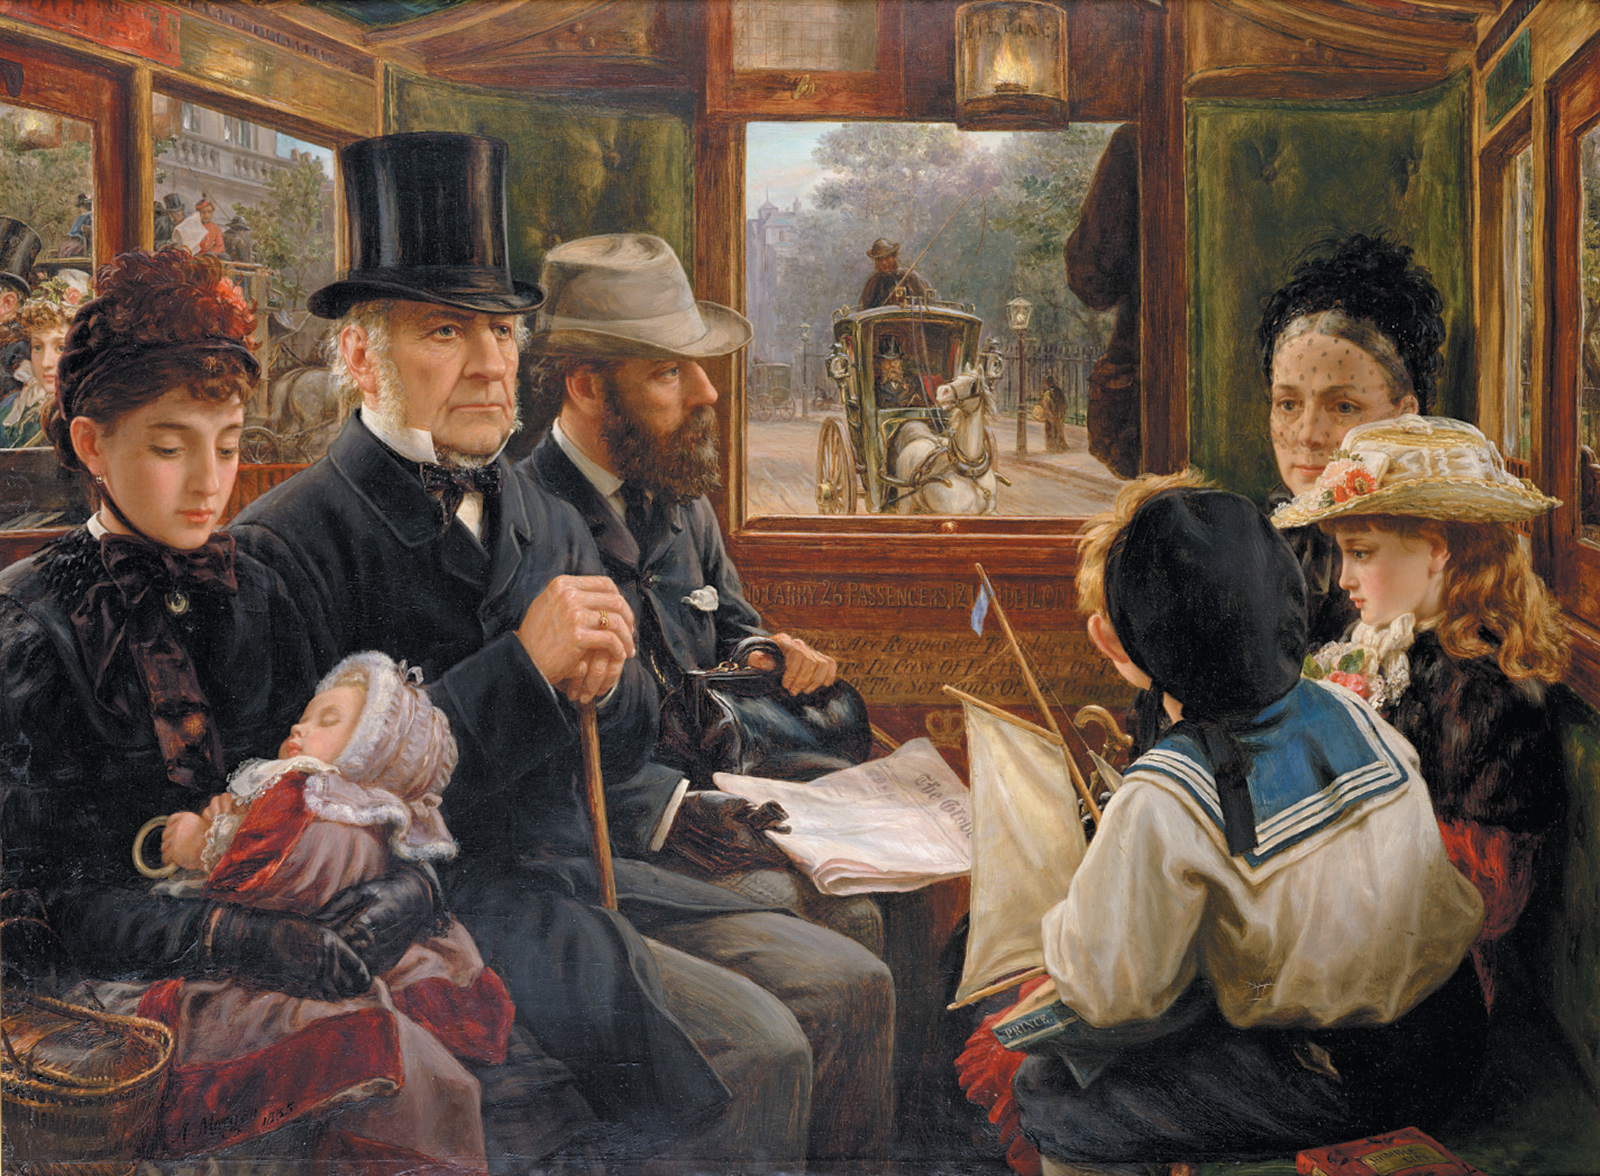 An Omnibus Ride to Piccadilly Circus, Mr. Gladstone Travelling with Ordinary Passengers by Alfred Morgan, 1885